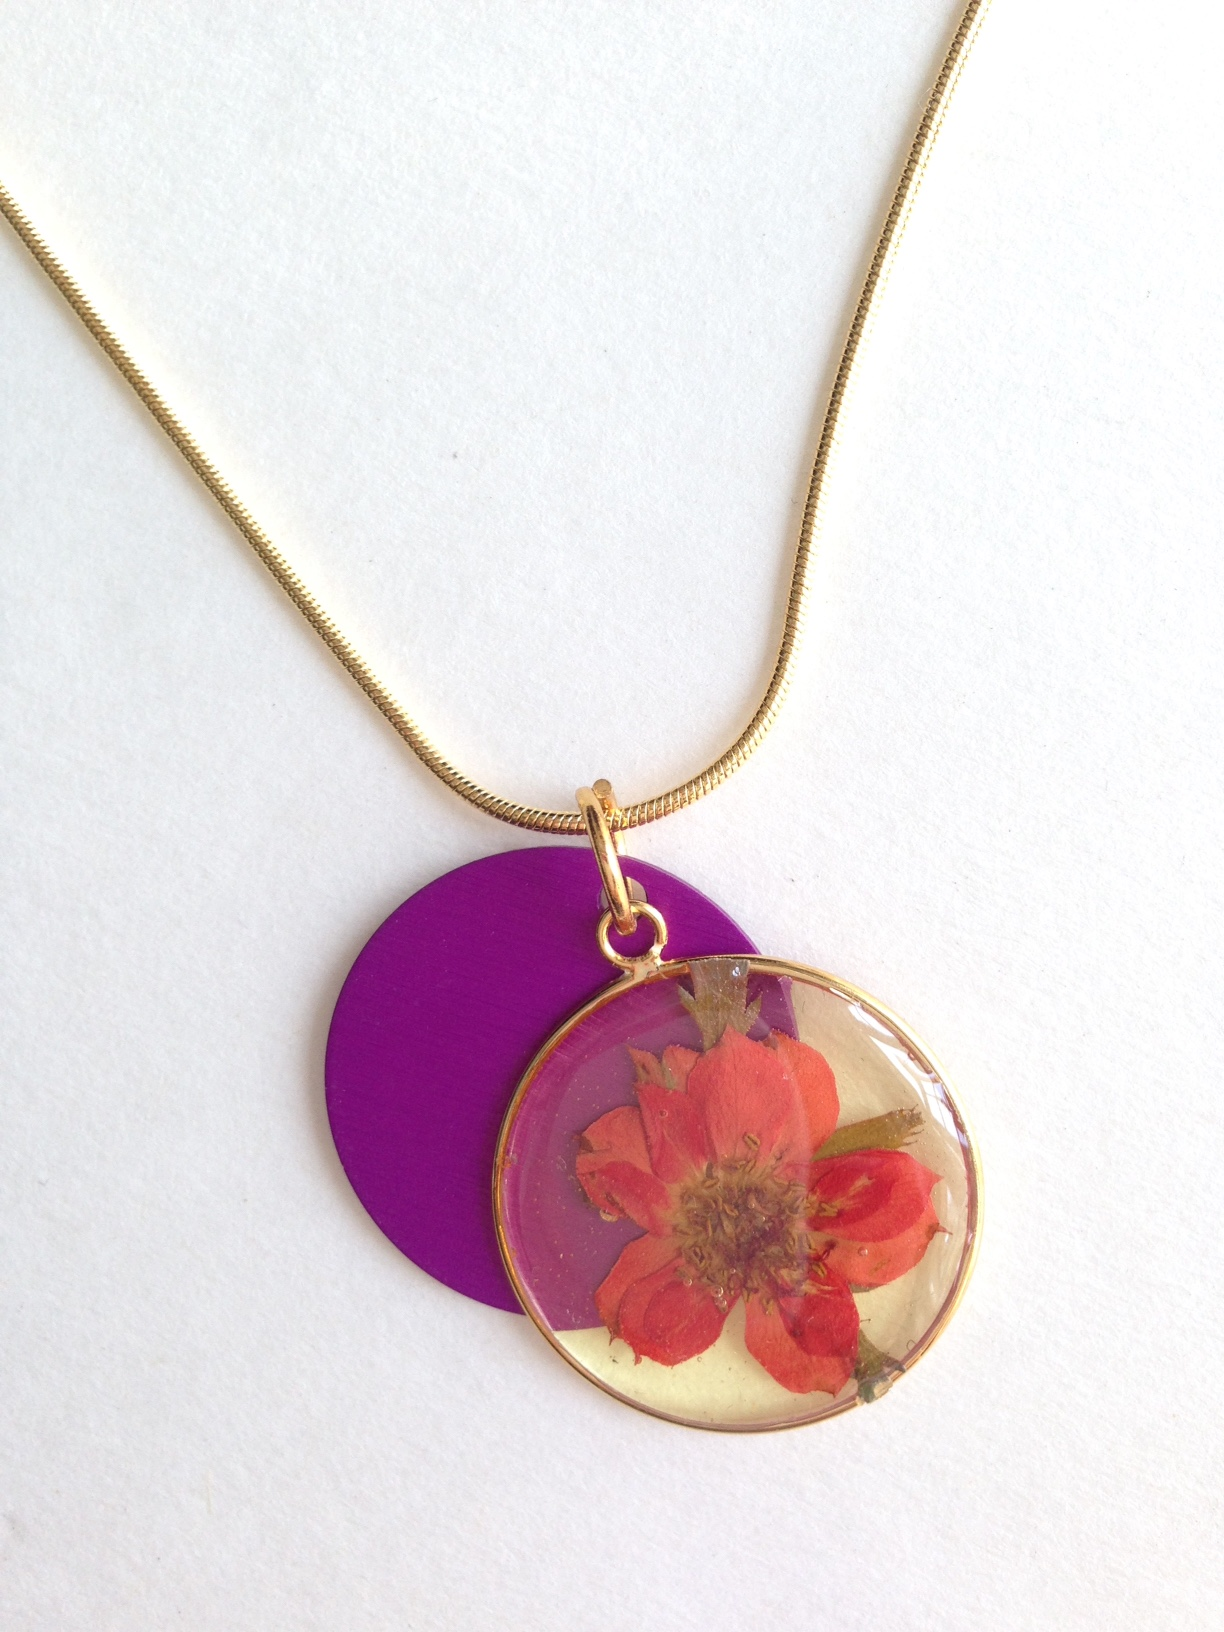 Pressed Flower with Purple Energy Disk Pendant